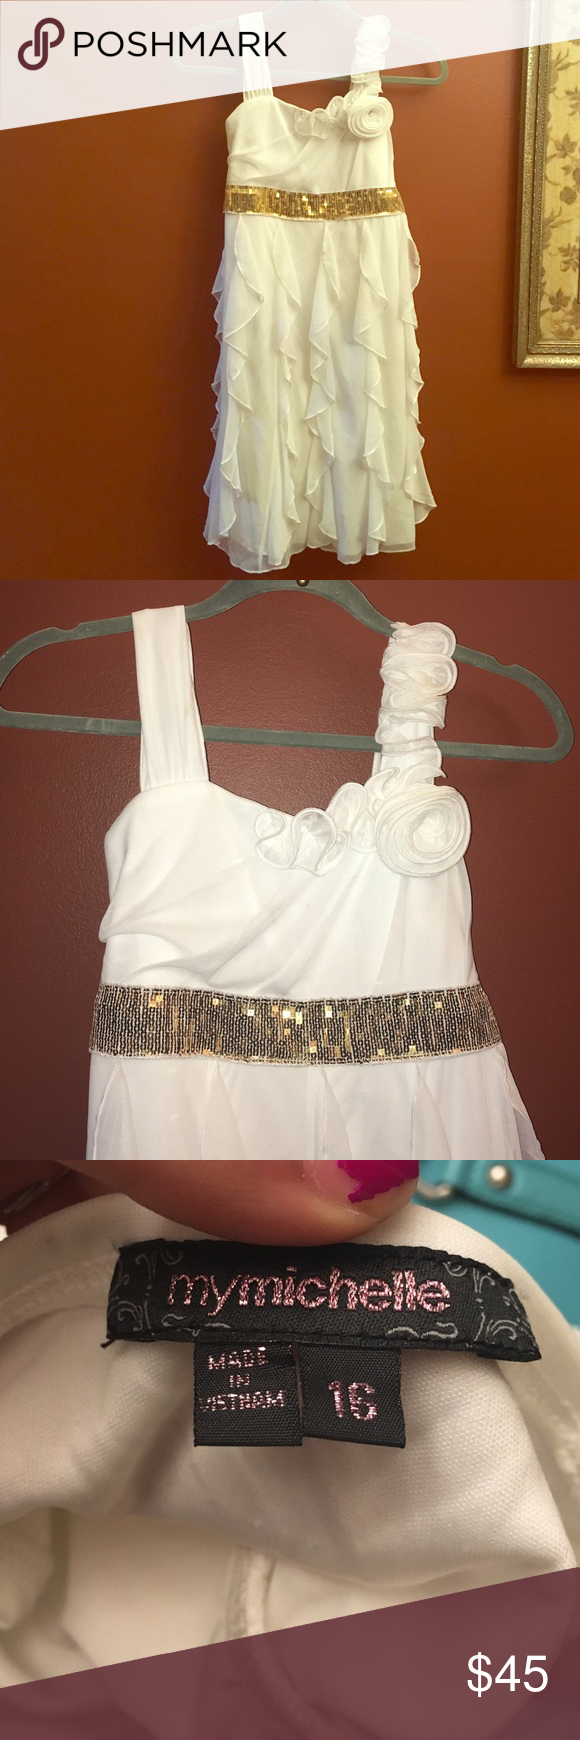 Girls party dress from macyus white flowy dress gold belts and